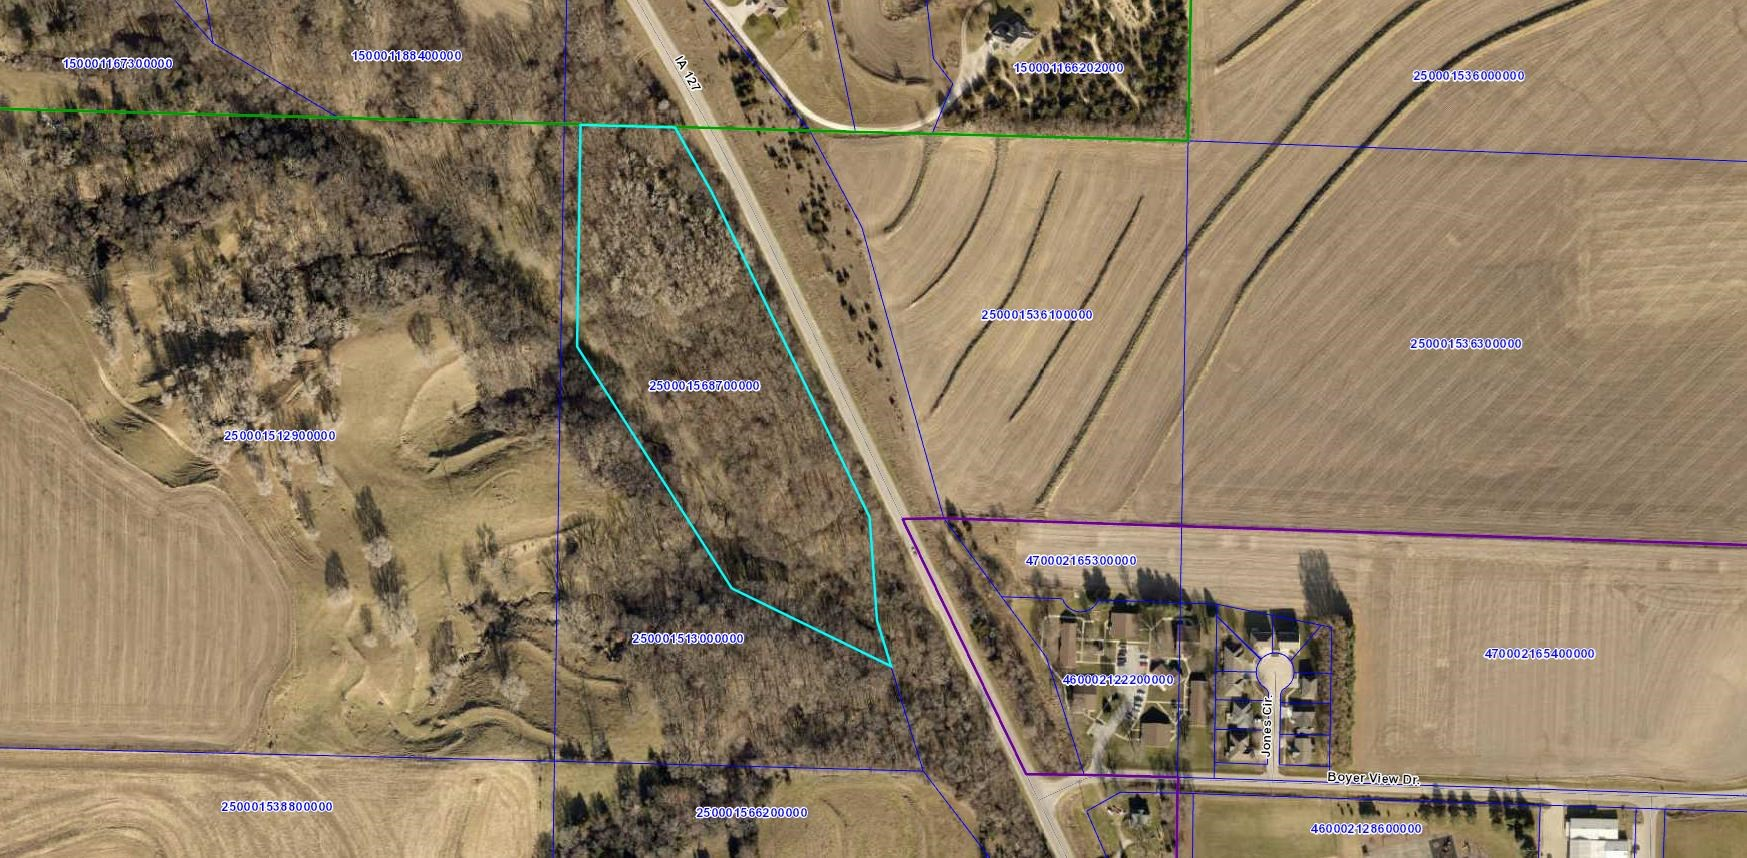 7.55 ACRE BUILDING SITE FOR SALE LOGAN IOWA